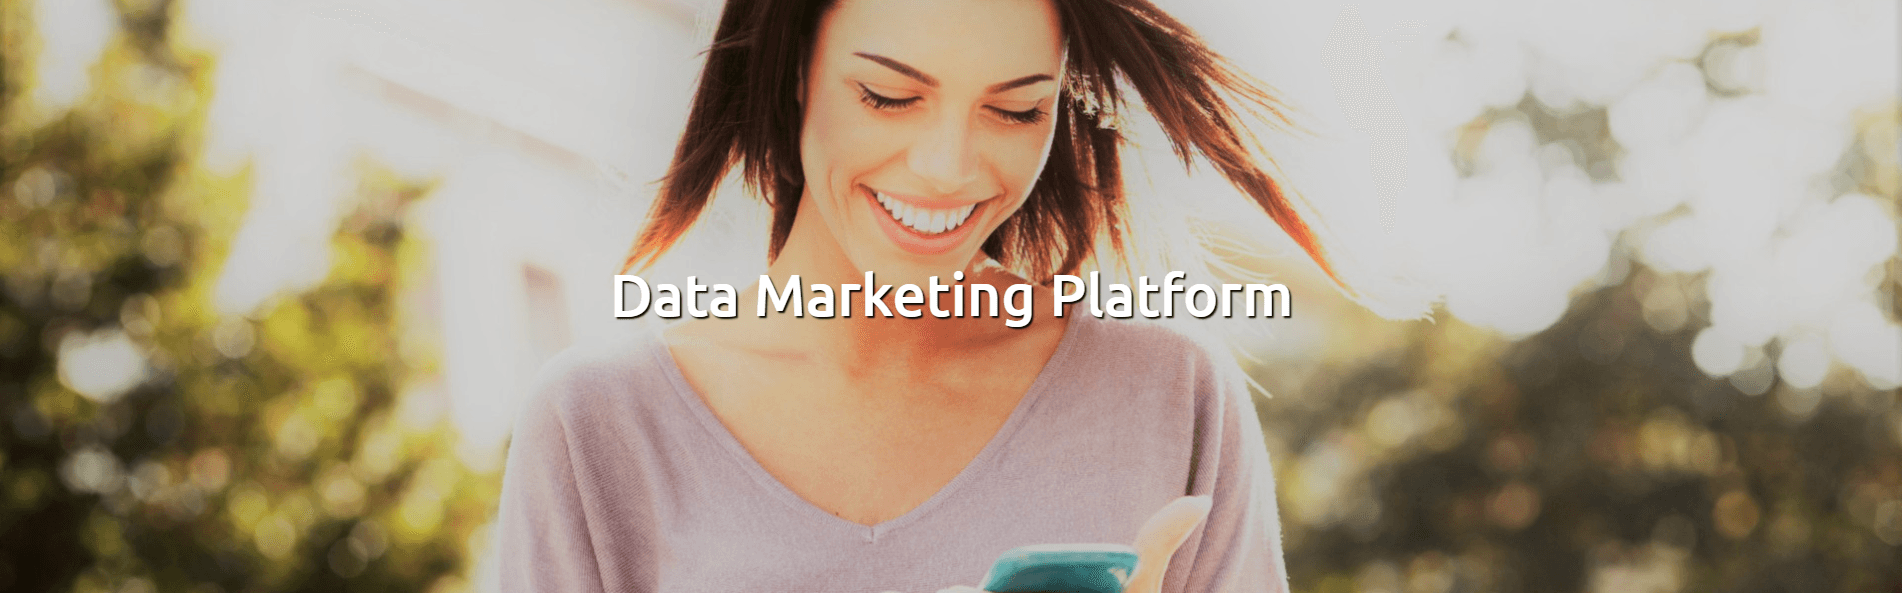 Data Marketing Platform